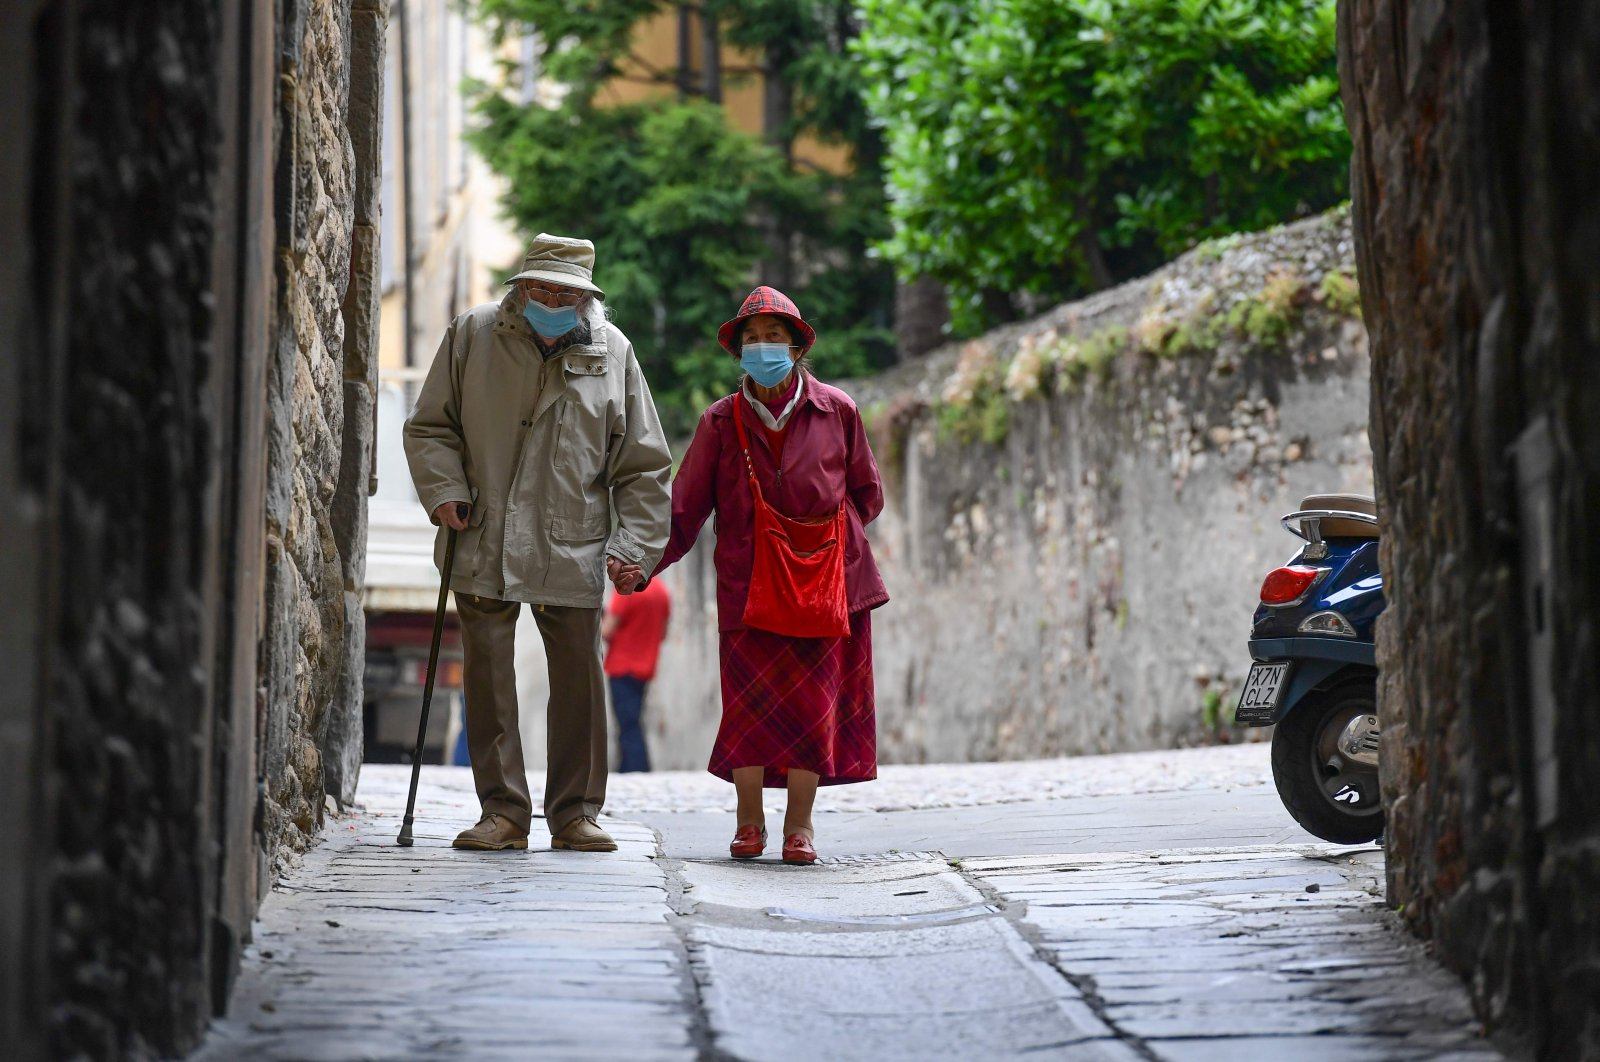 An elderly couple wearing face masks due to the coronavirus outbreak walk in a street in the upper city of Bergamo, Italy, June 10, 2020. (AFP Photo)